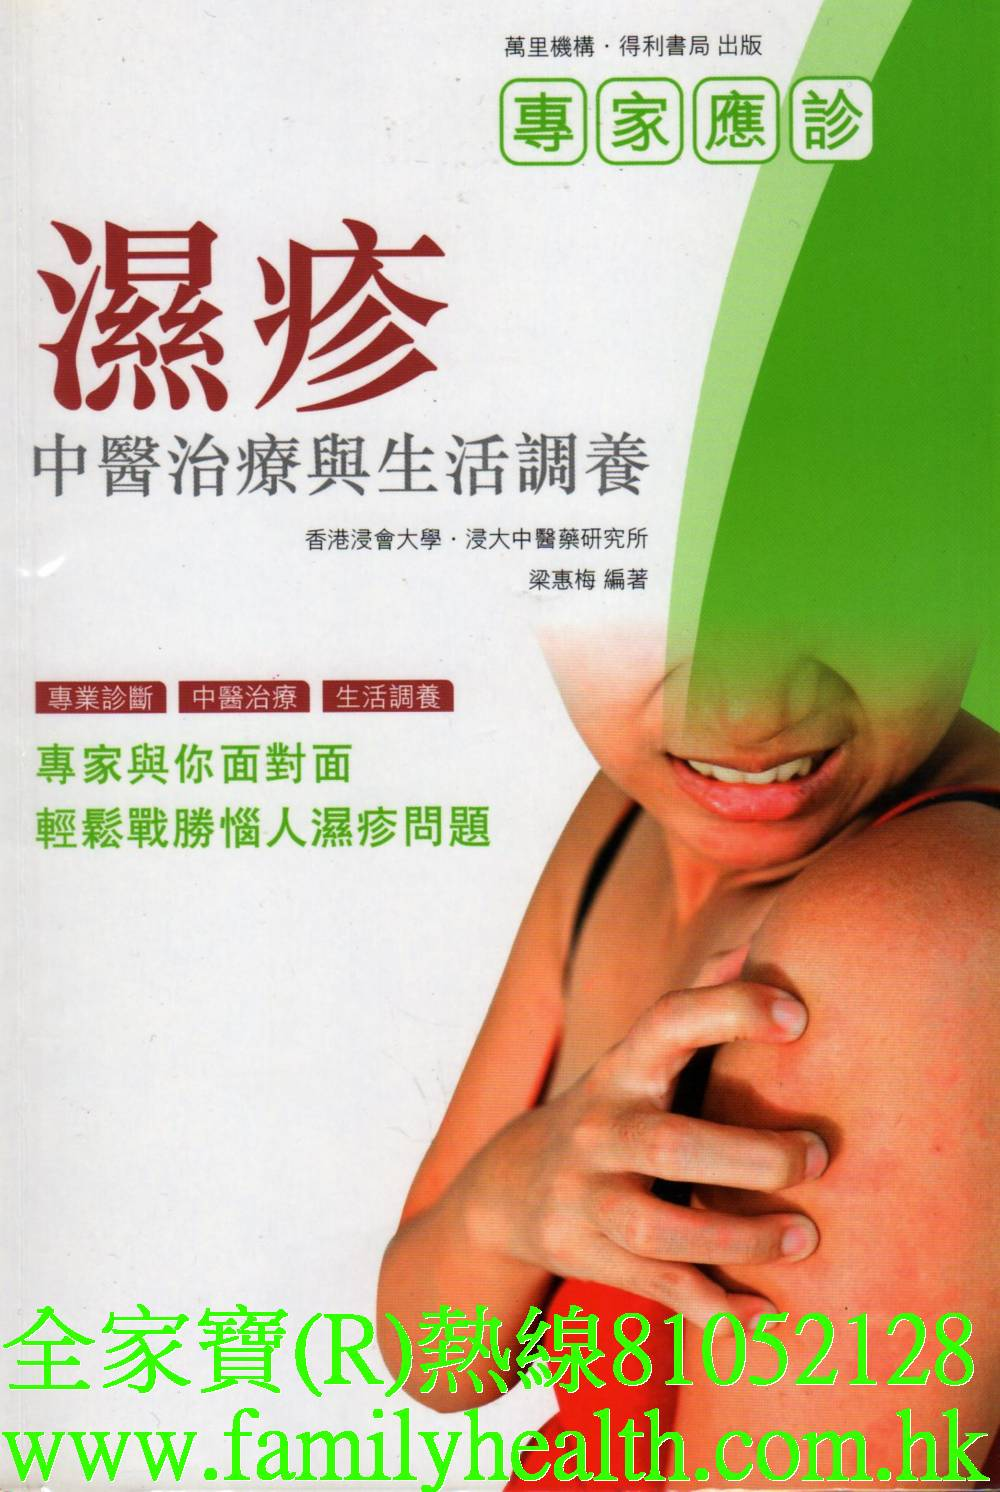 http://www.familyhealth.com.hk/files/full/922_0.jpg